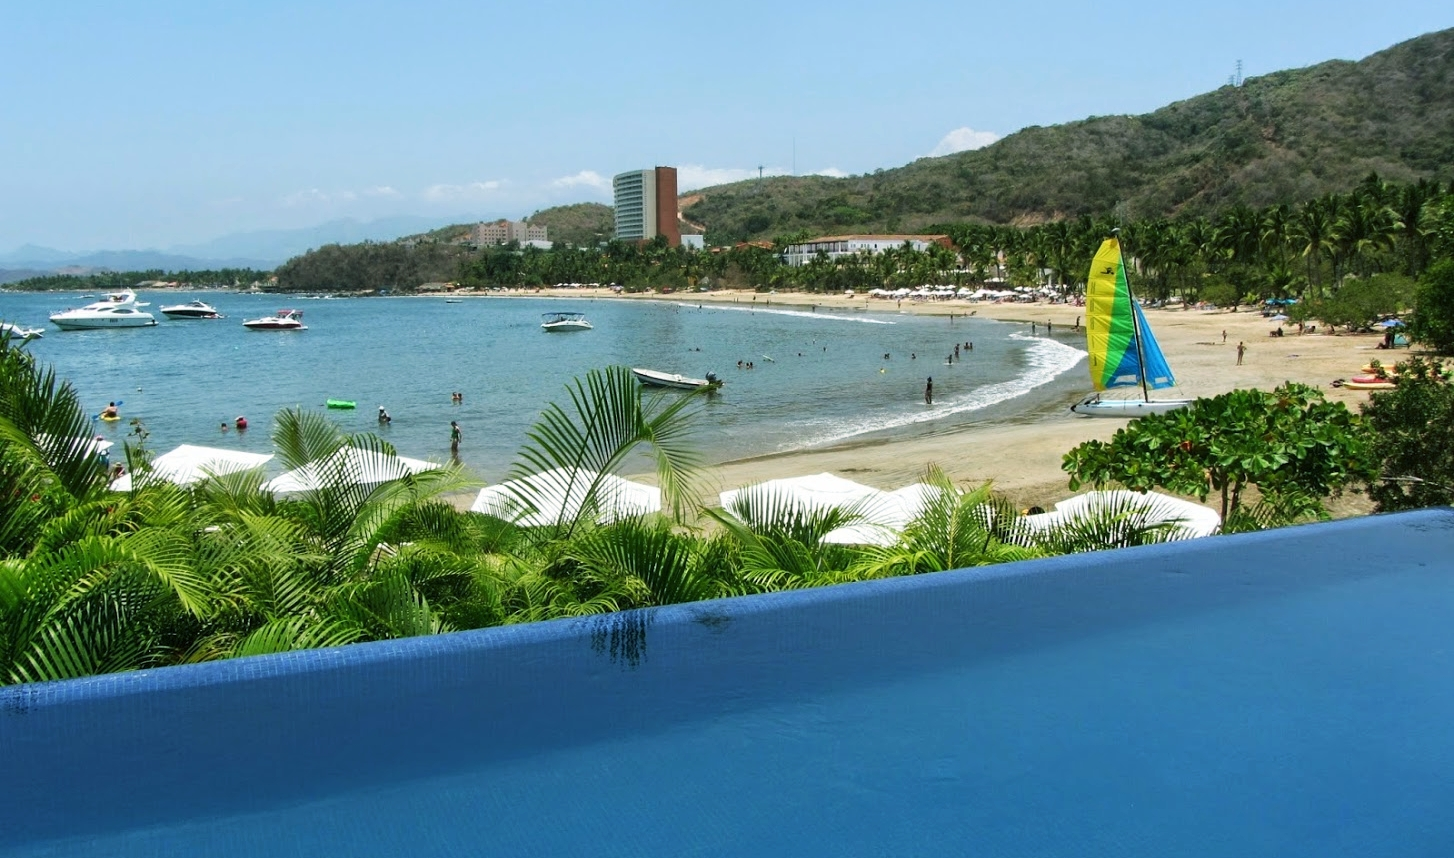 Playa Quieta Beach Club is perfect for families with small children with the most calm waves and water sports.